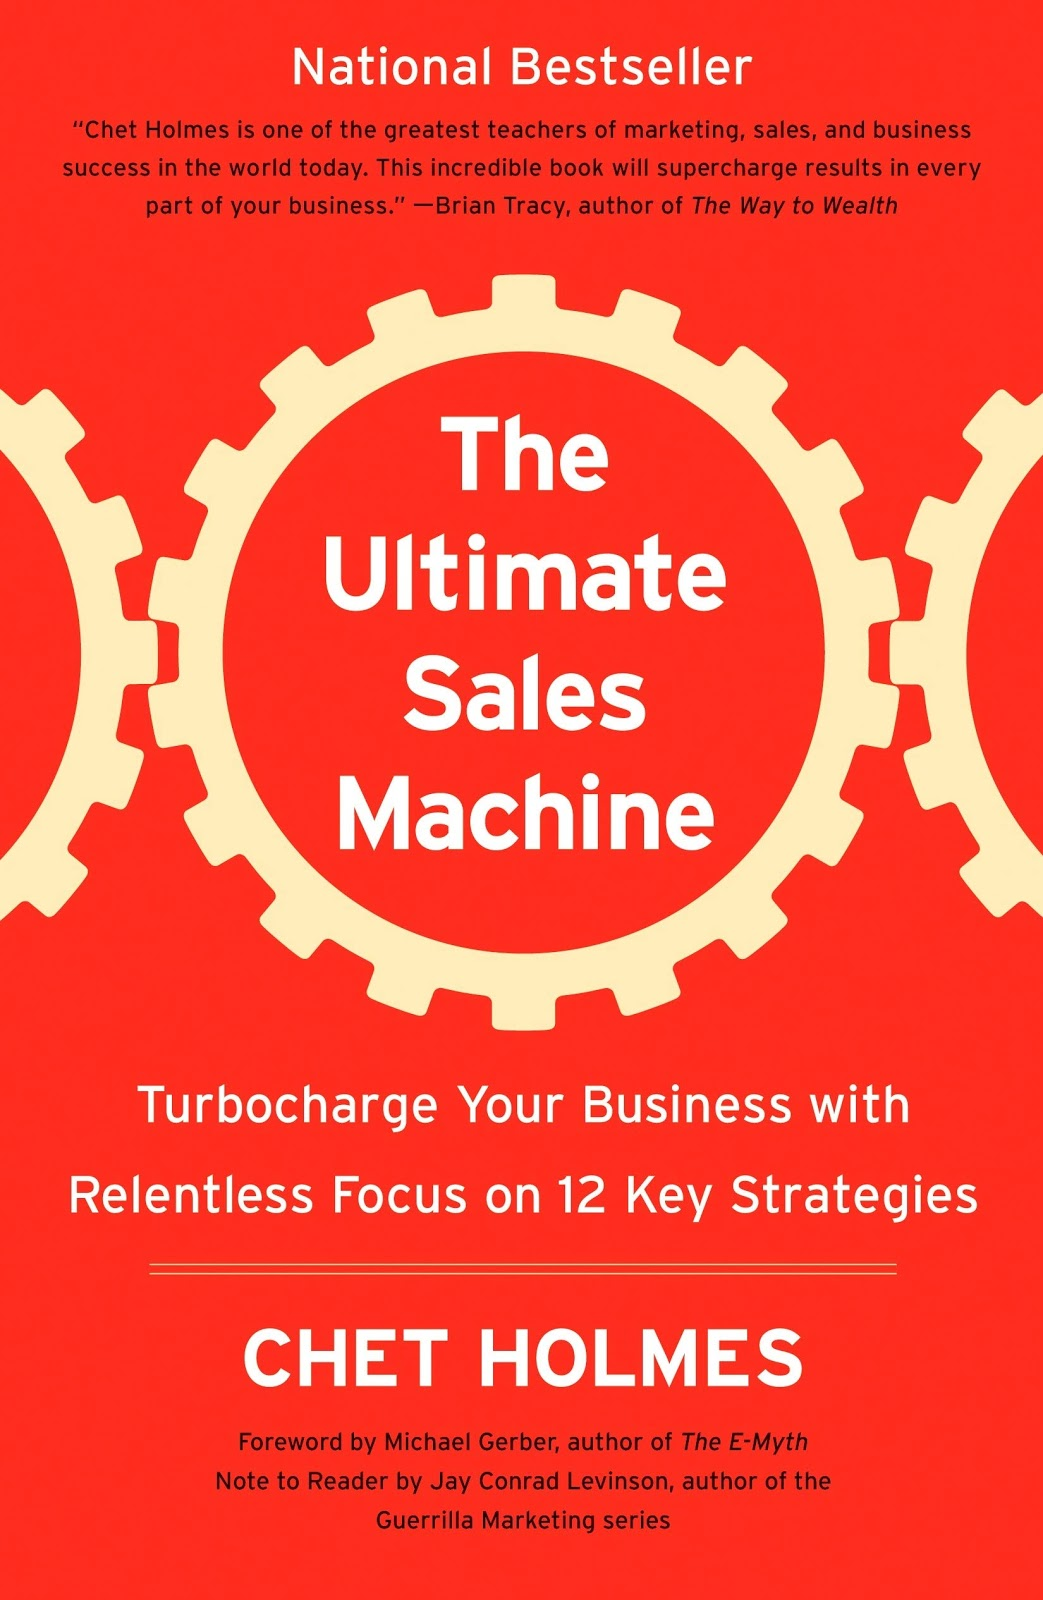 Ultimate Sales Machine for productized services.jpg